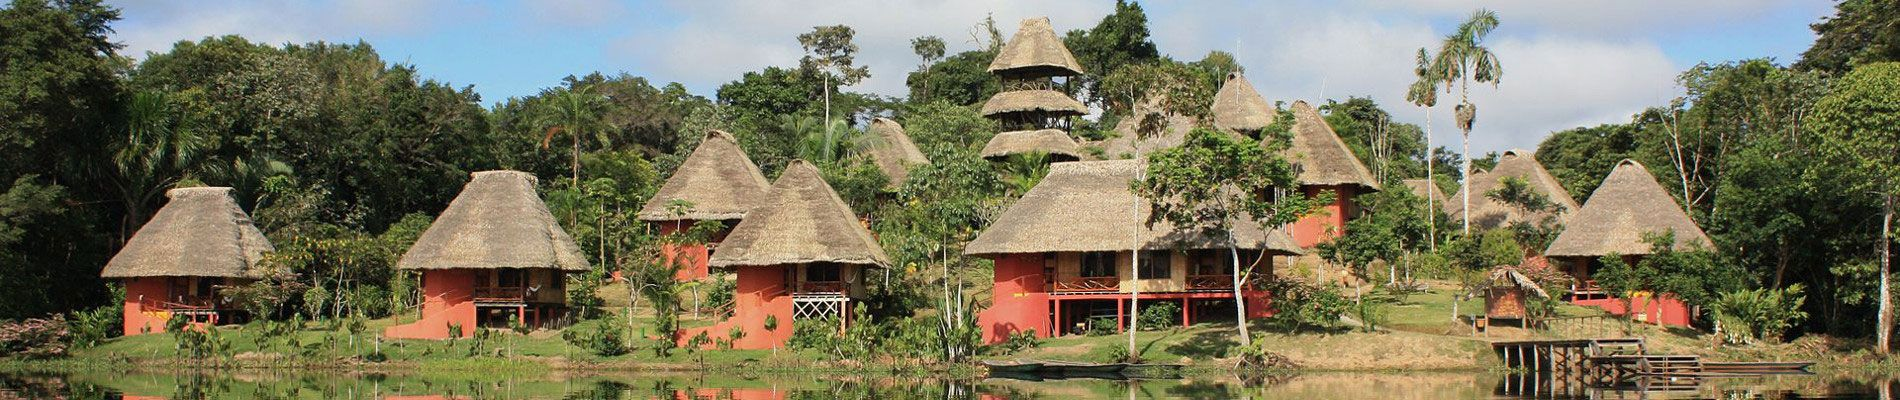 equateur-amazonie-napo-wildlife-lodge